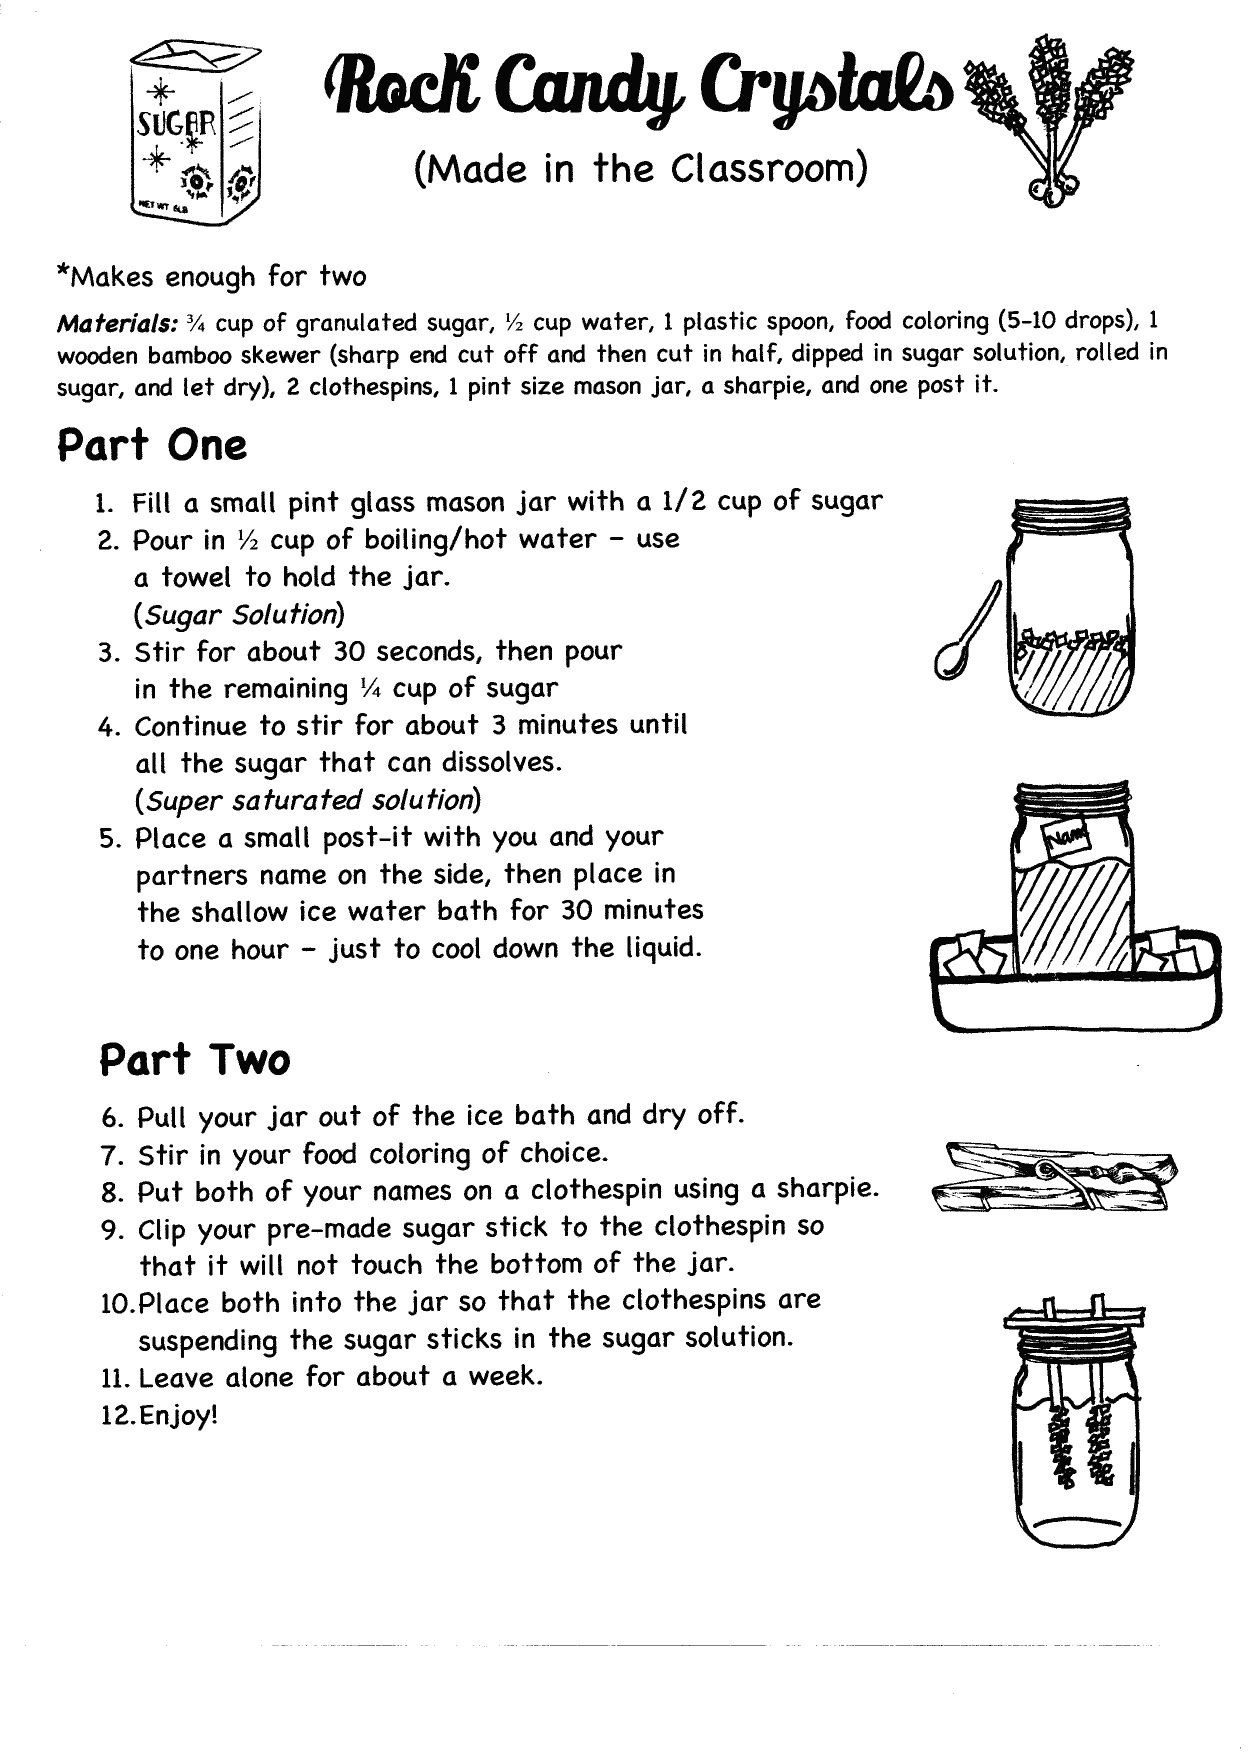 Science Worksheets for 8th Grade Rock Candy Crystals In the Classroom Pg 1 Of 2 8th Grade